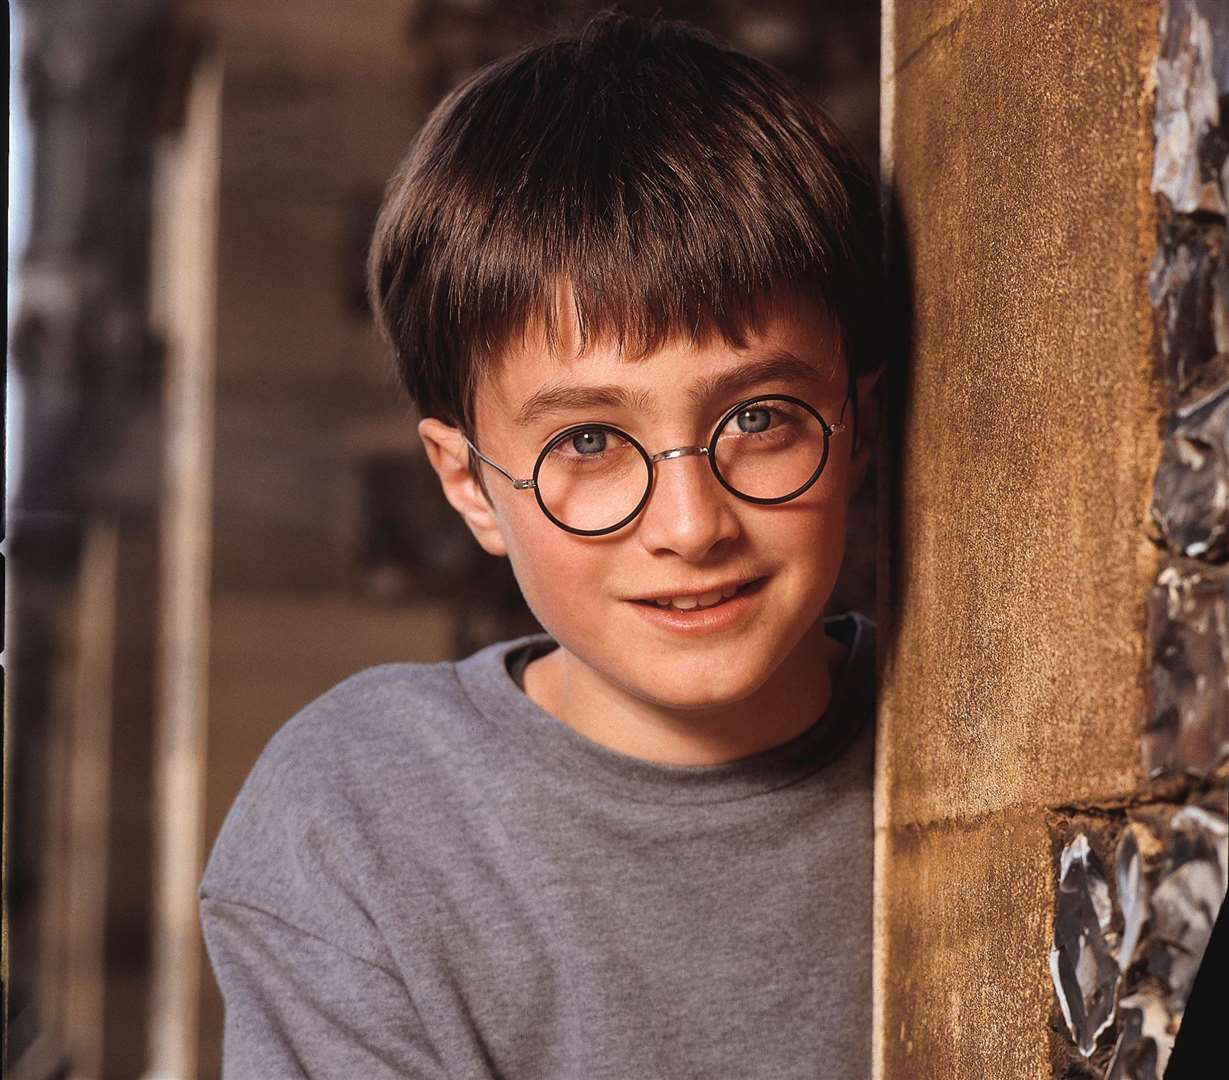 Daniel Radcliffe as a young Harry Potter Picture: Terry O'Neill, Warner Brothers Pictures